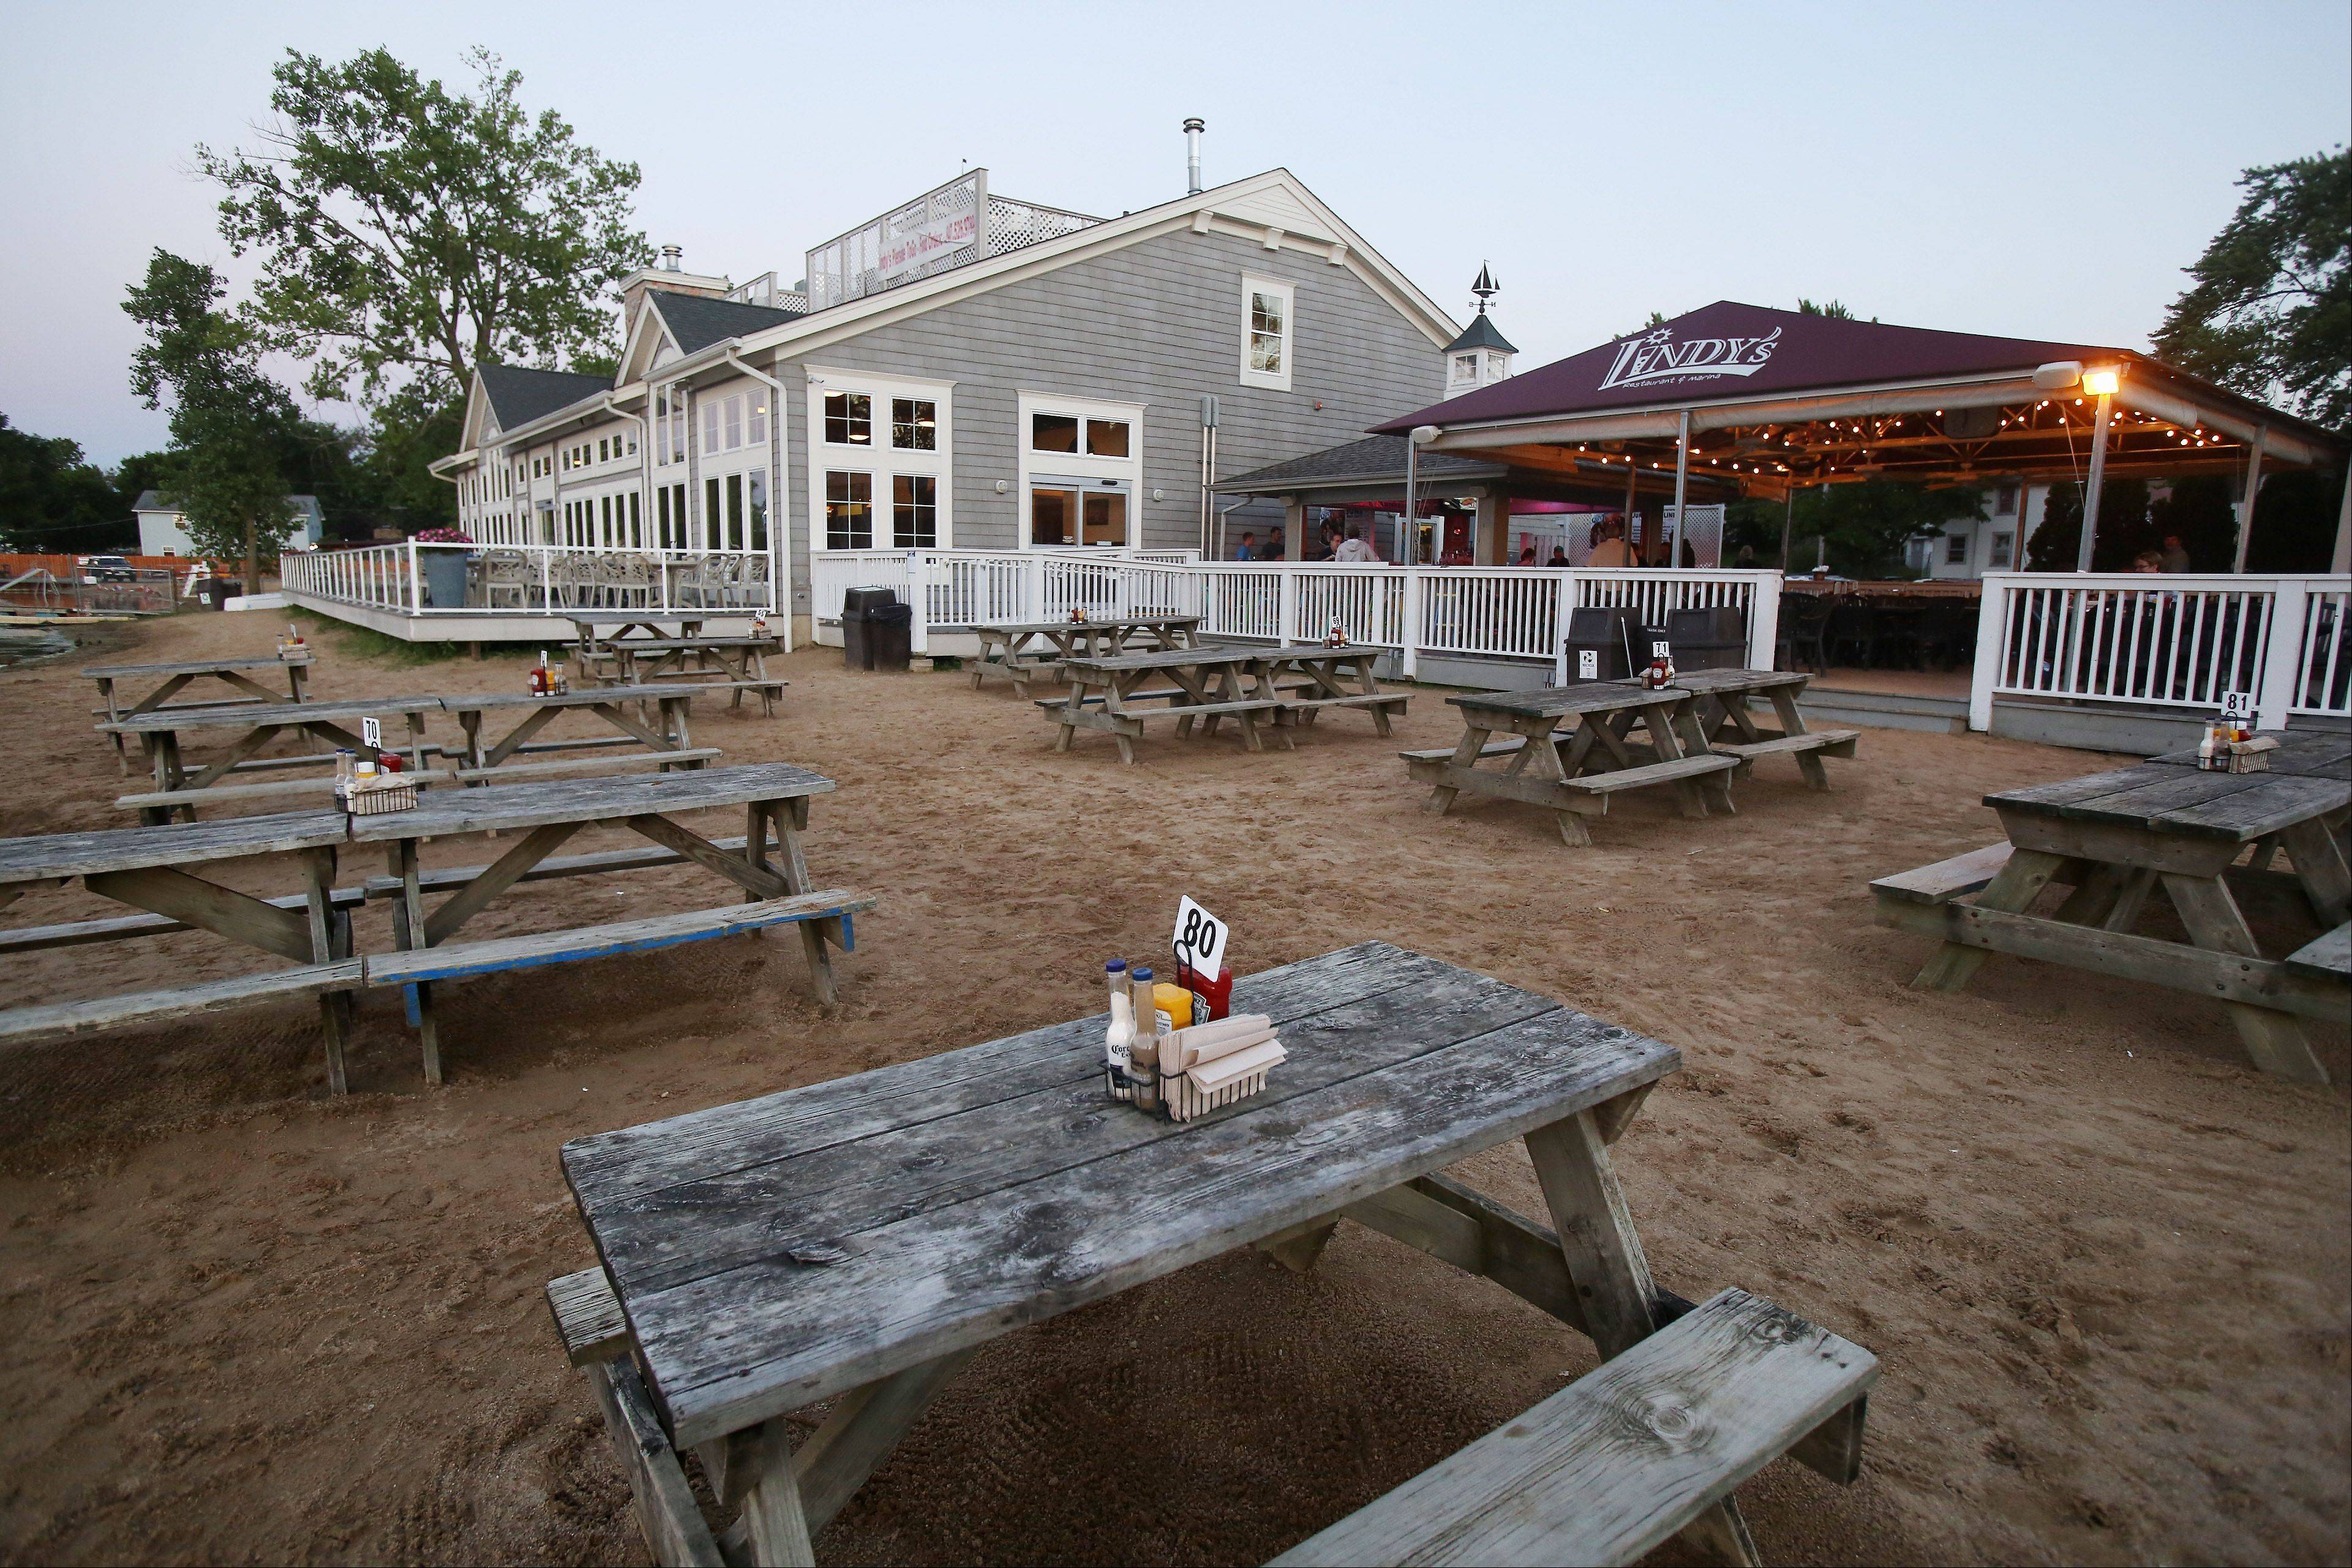 The beach area at Lindy's Landing in Wauconda is a casual, sandy spot for dinner and drinks.